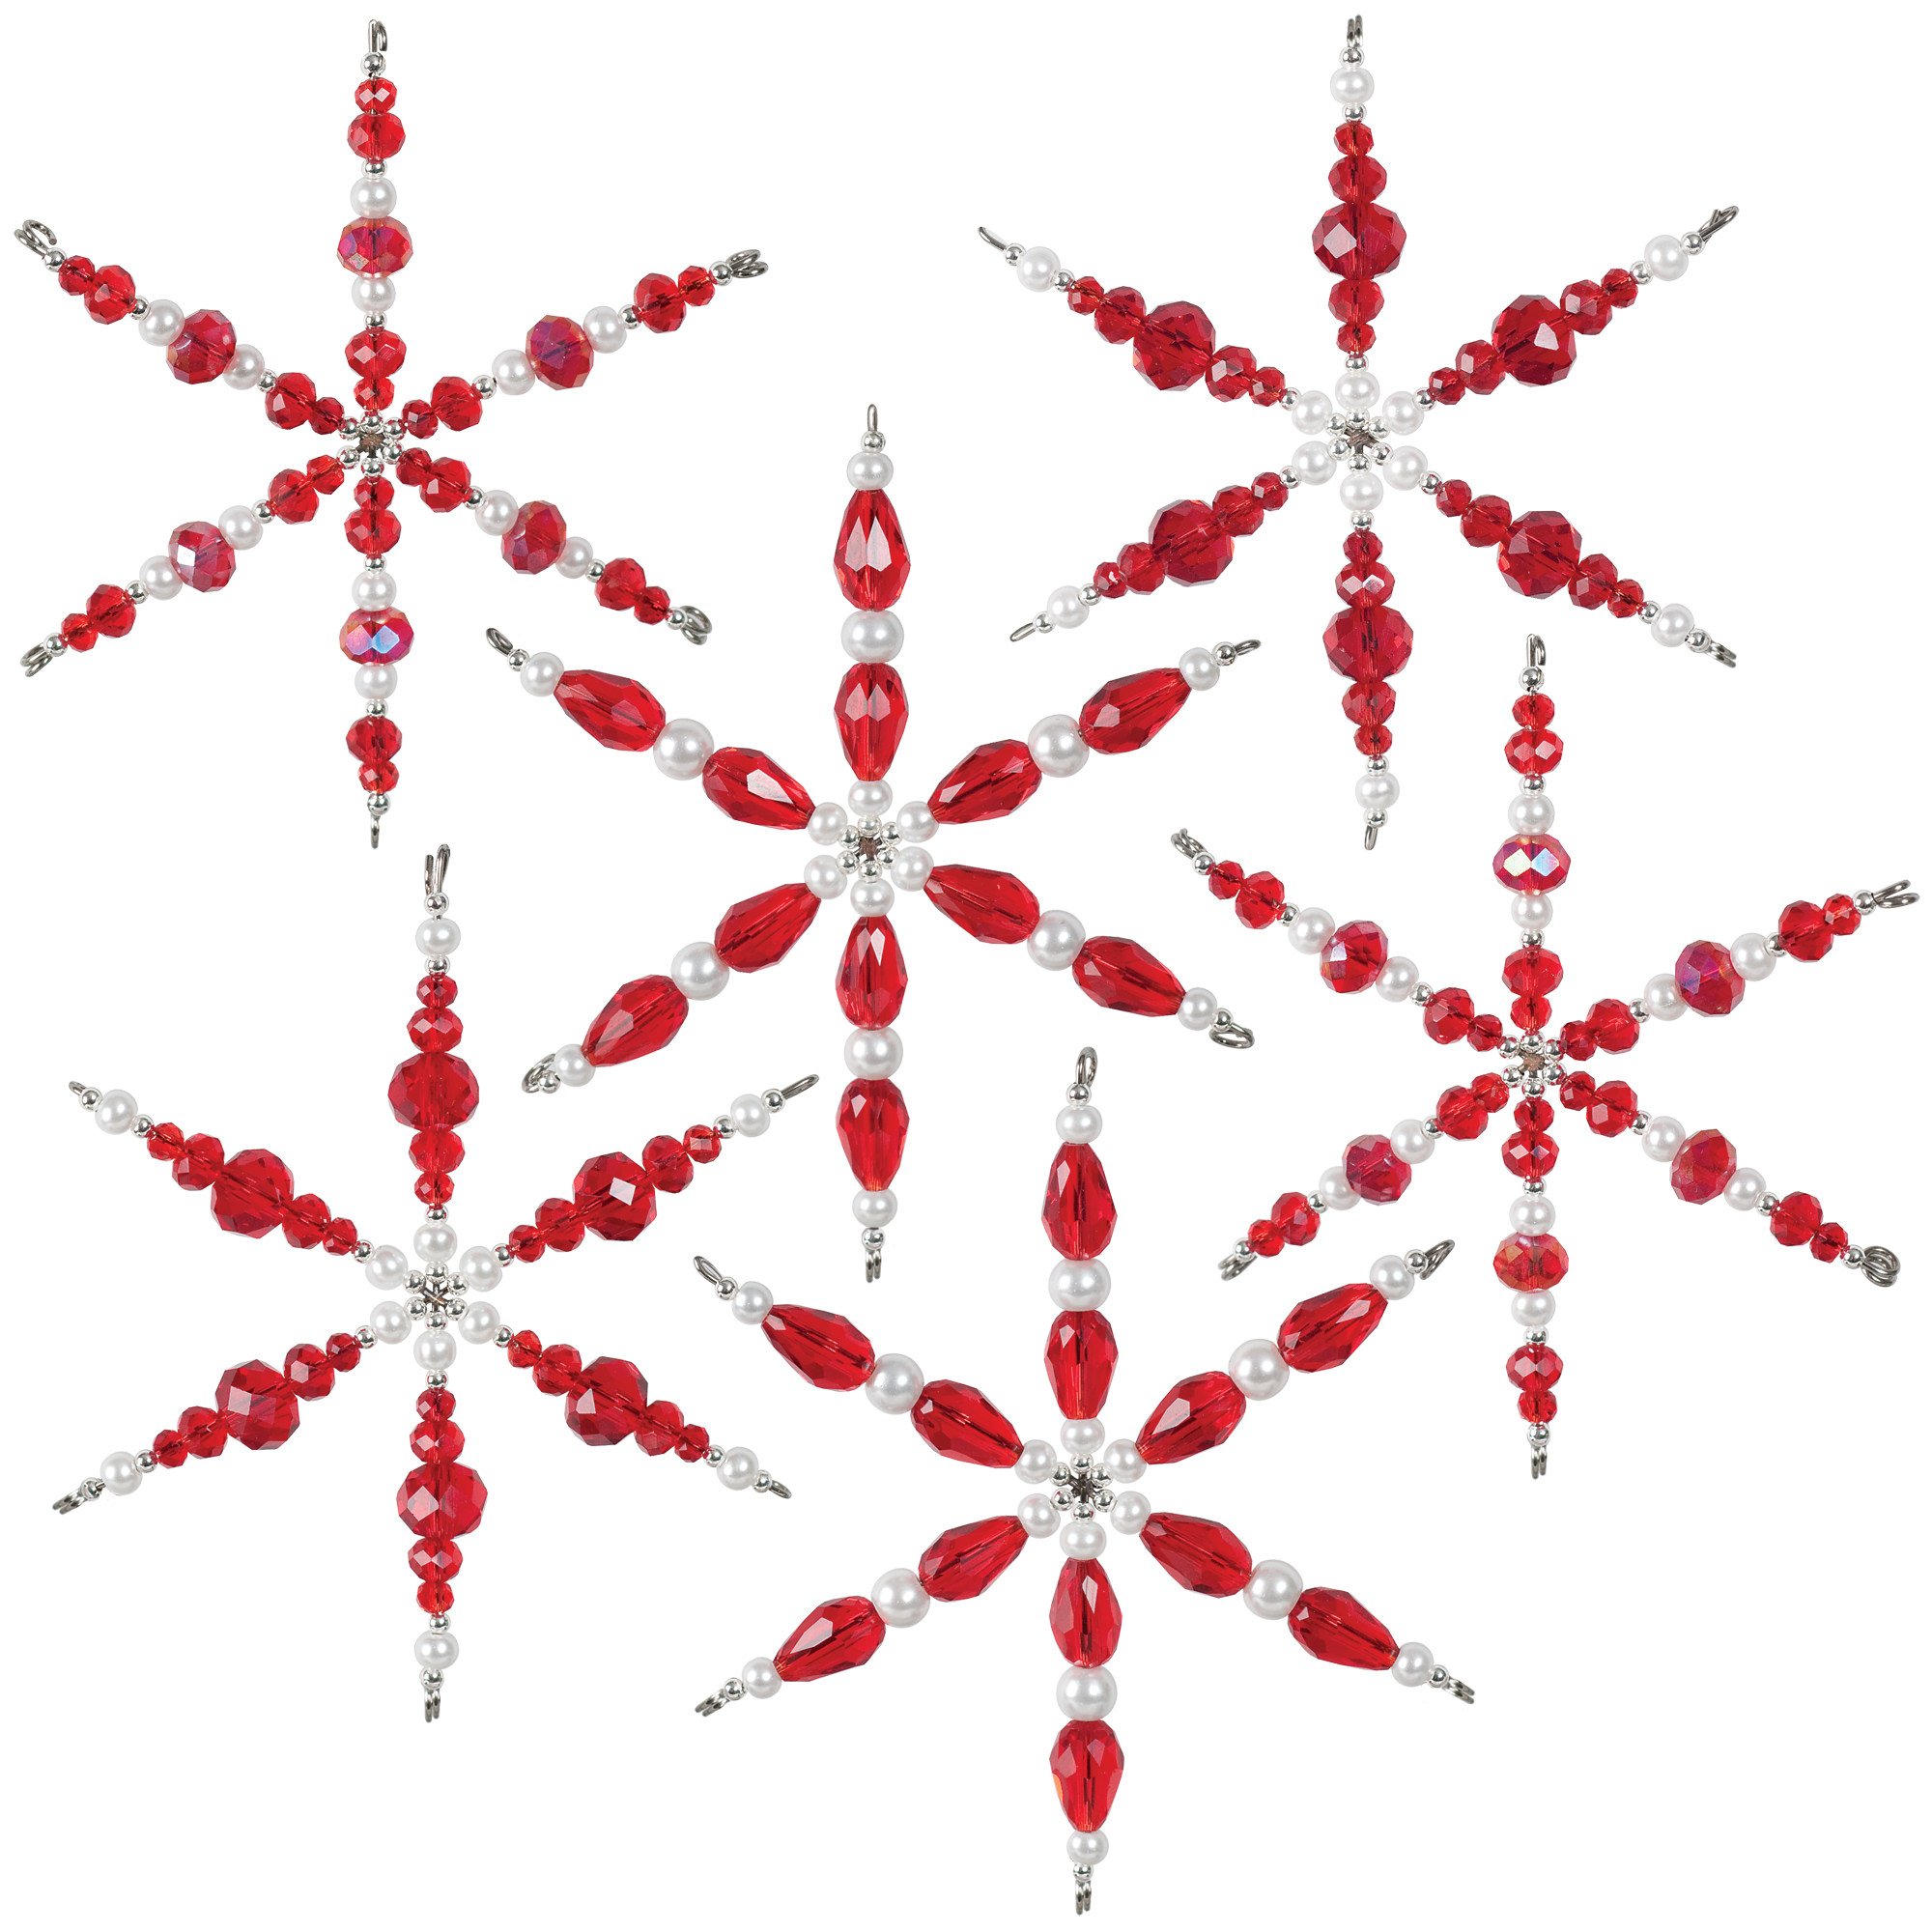 Nostalgic Christmas™ Beaded Crystal Ornaments Kit - Ruby Snowflakes